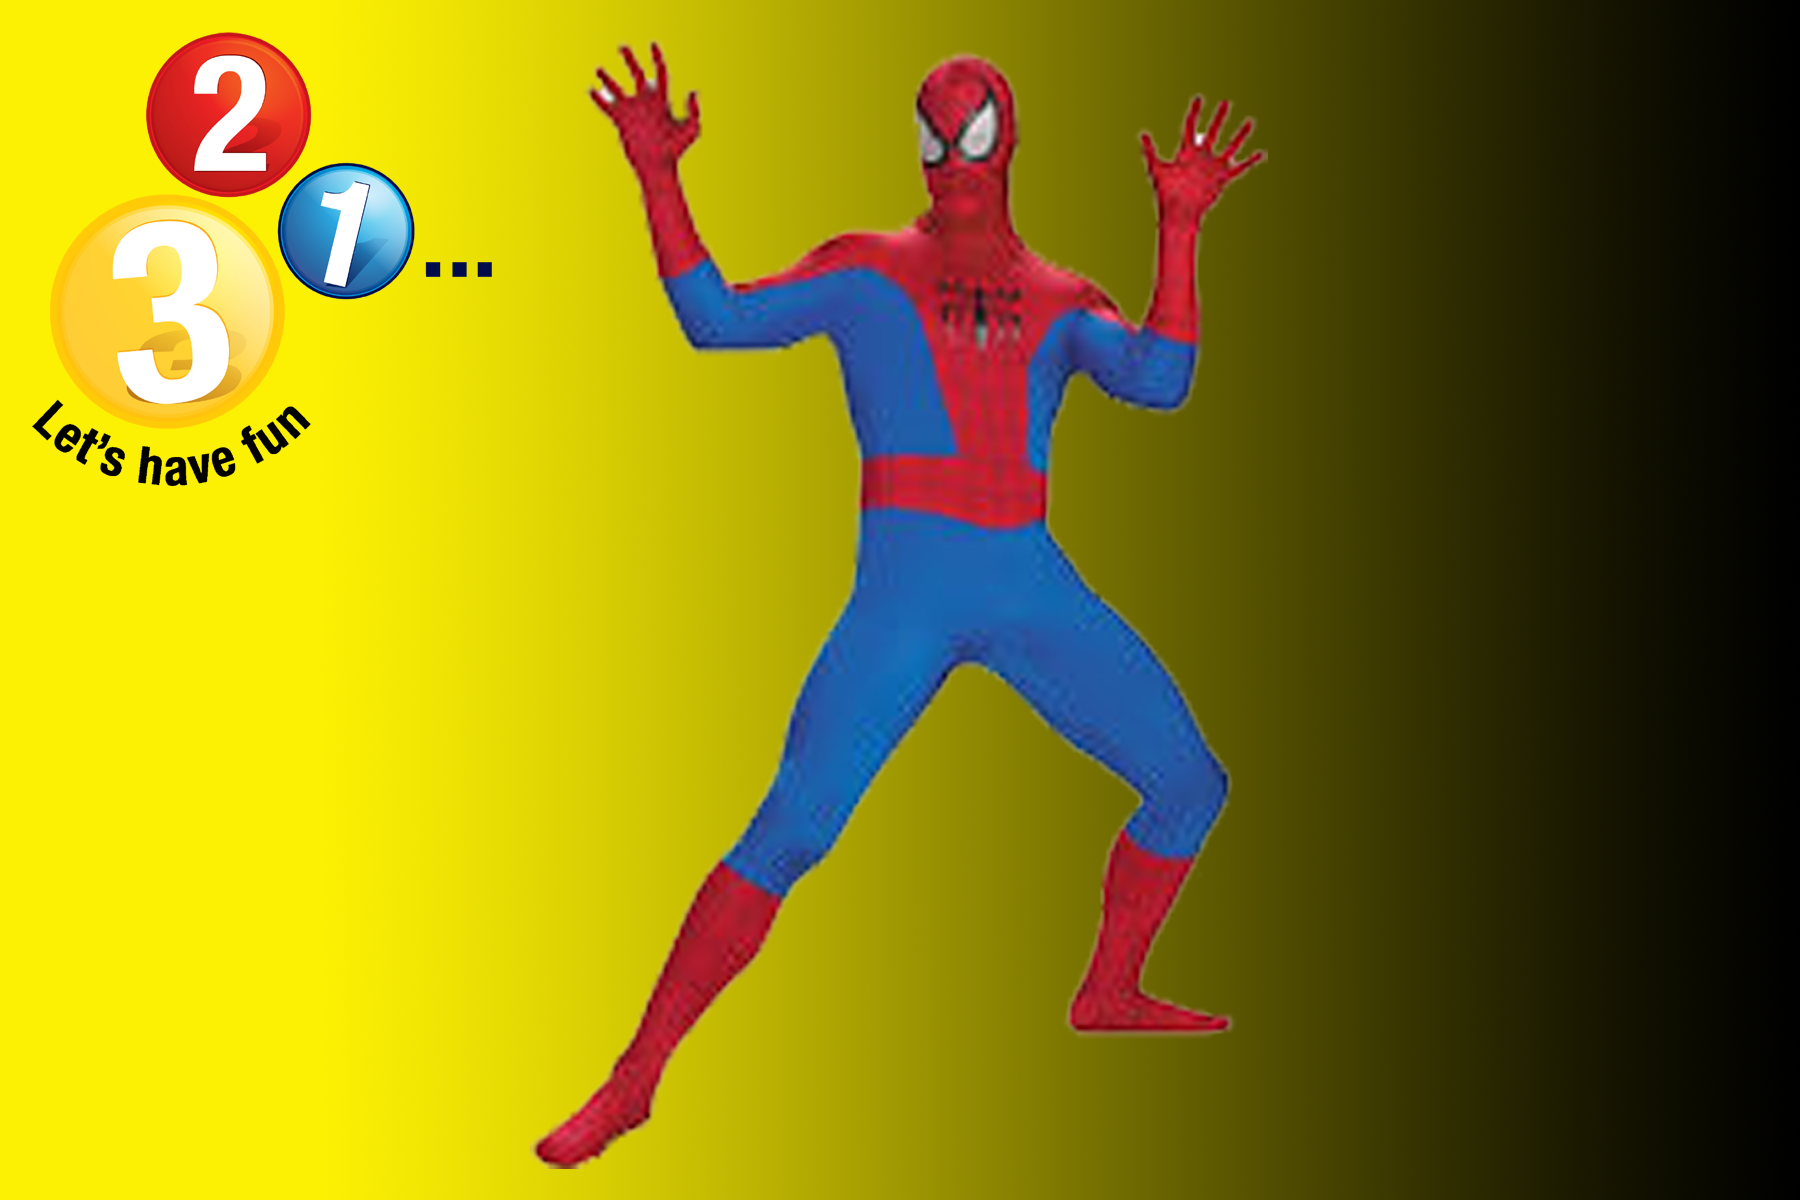 Spiderman Character Appearance Warwickshire